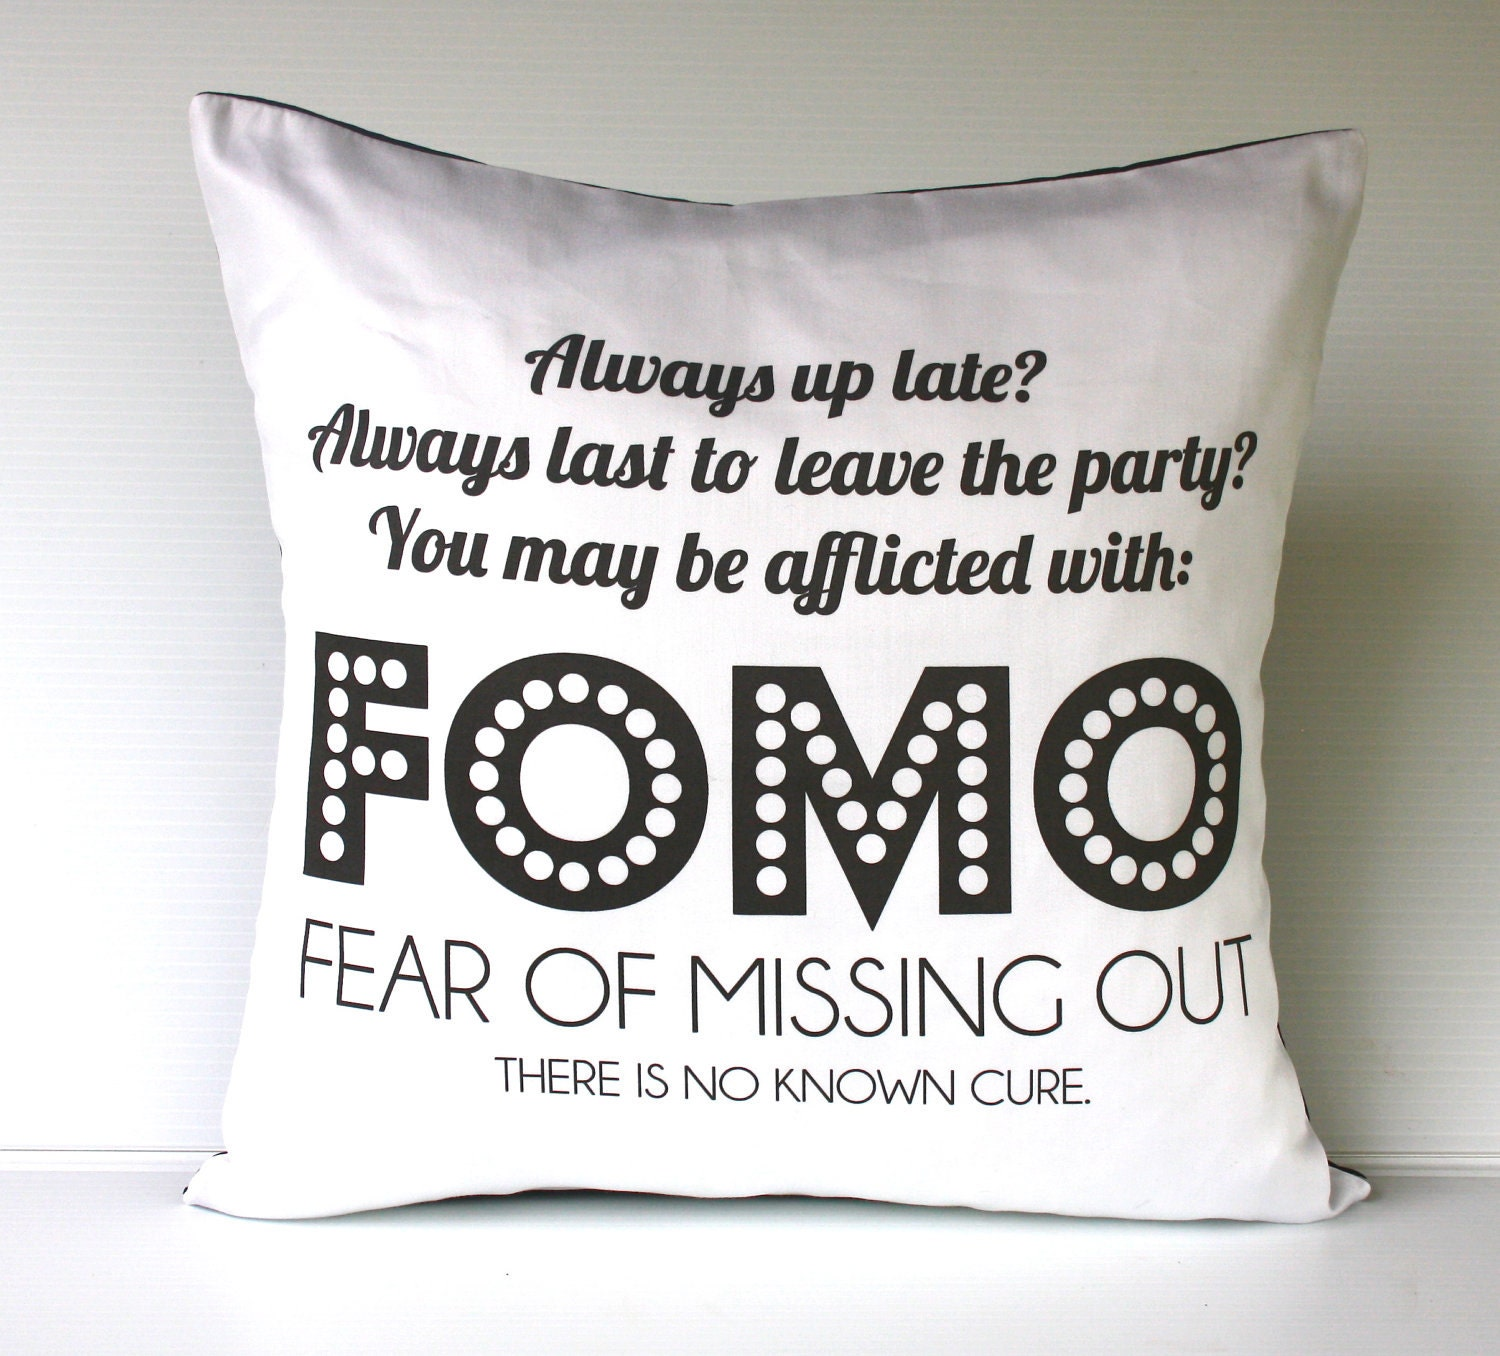 how to cure the fear of missing out